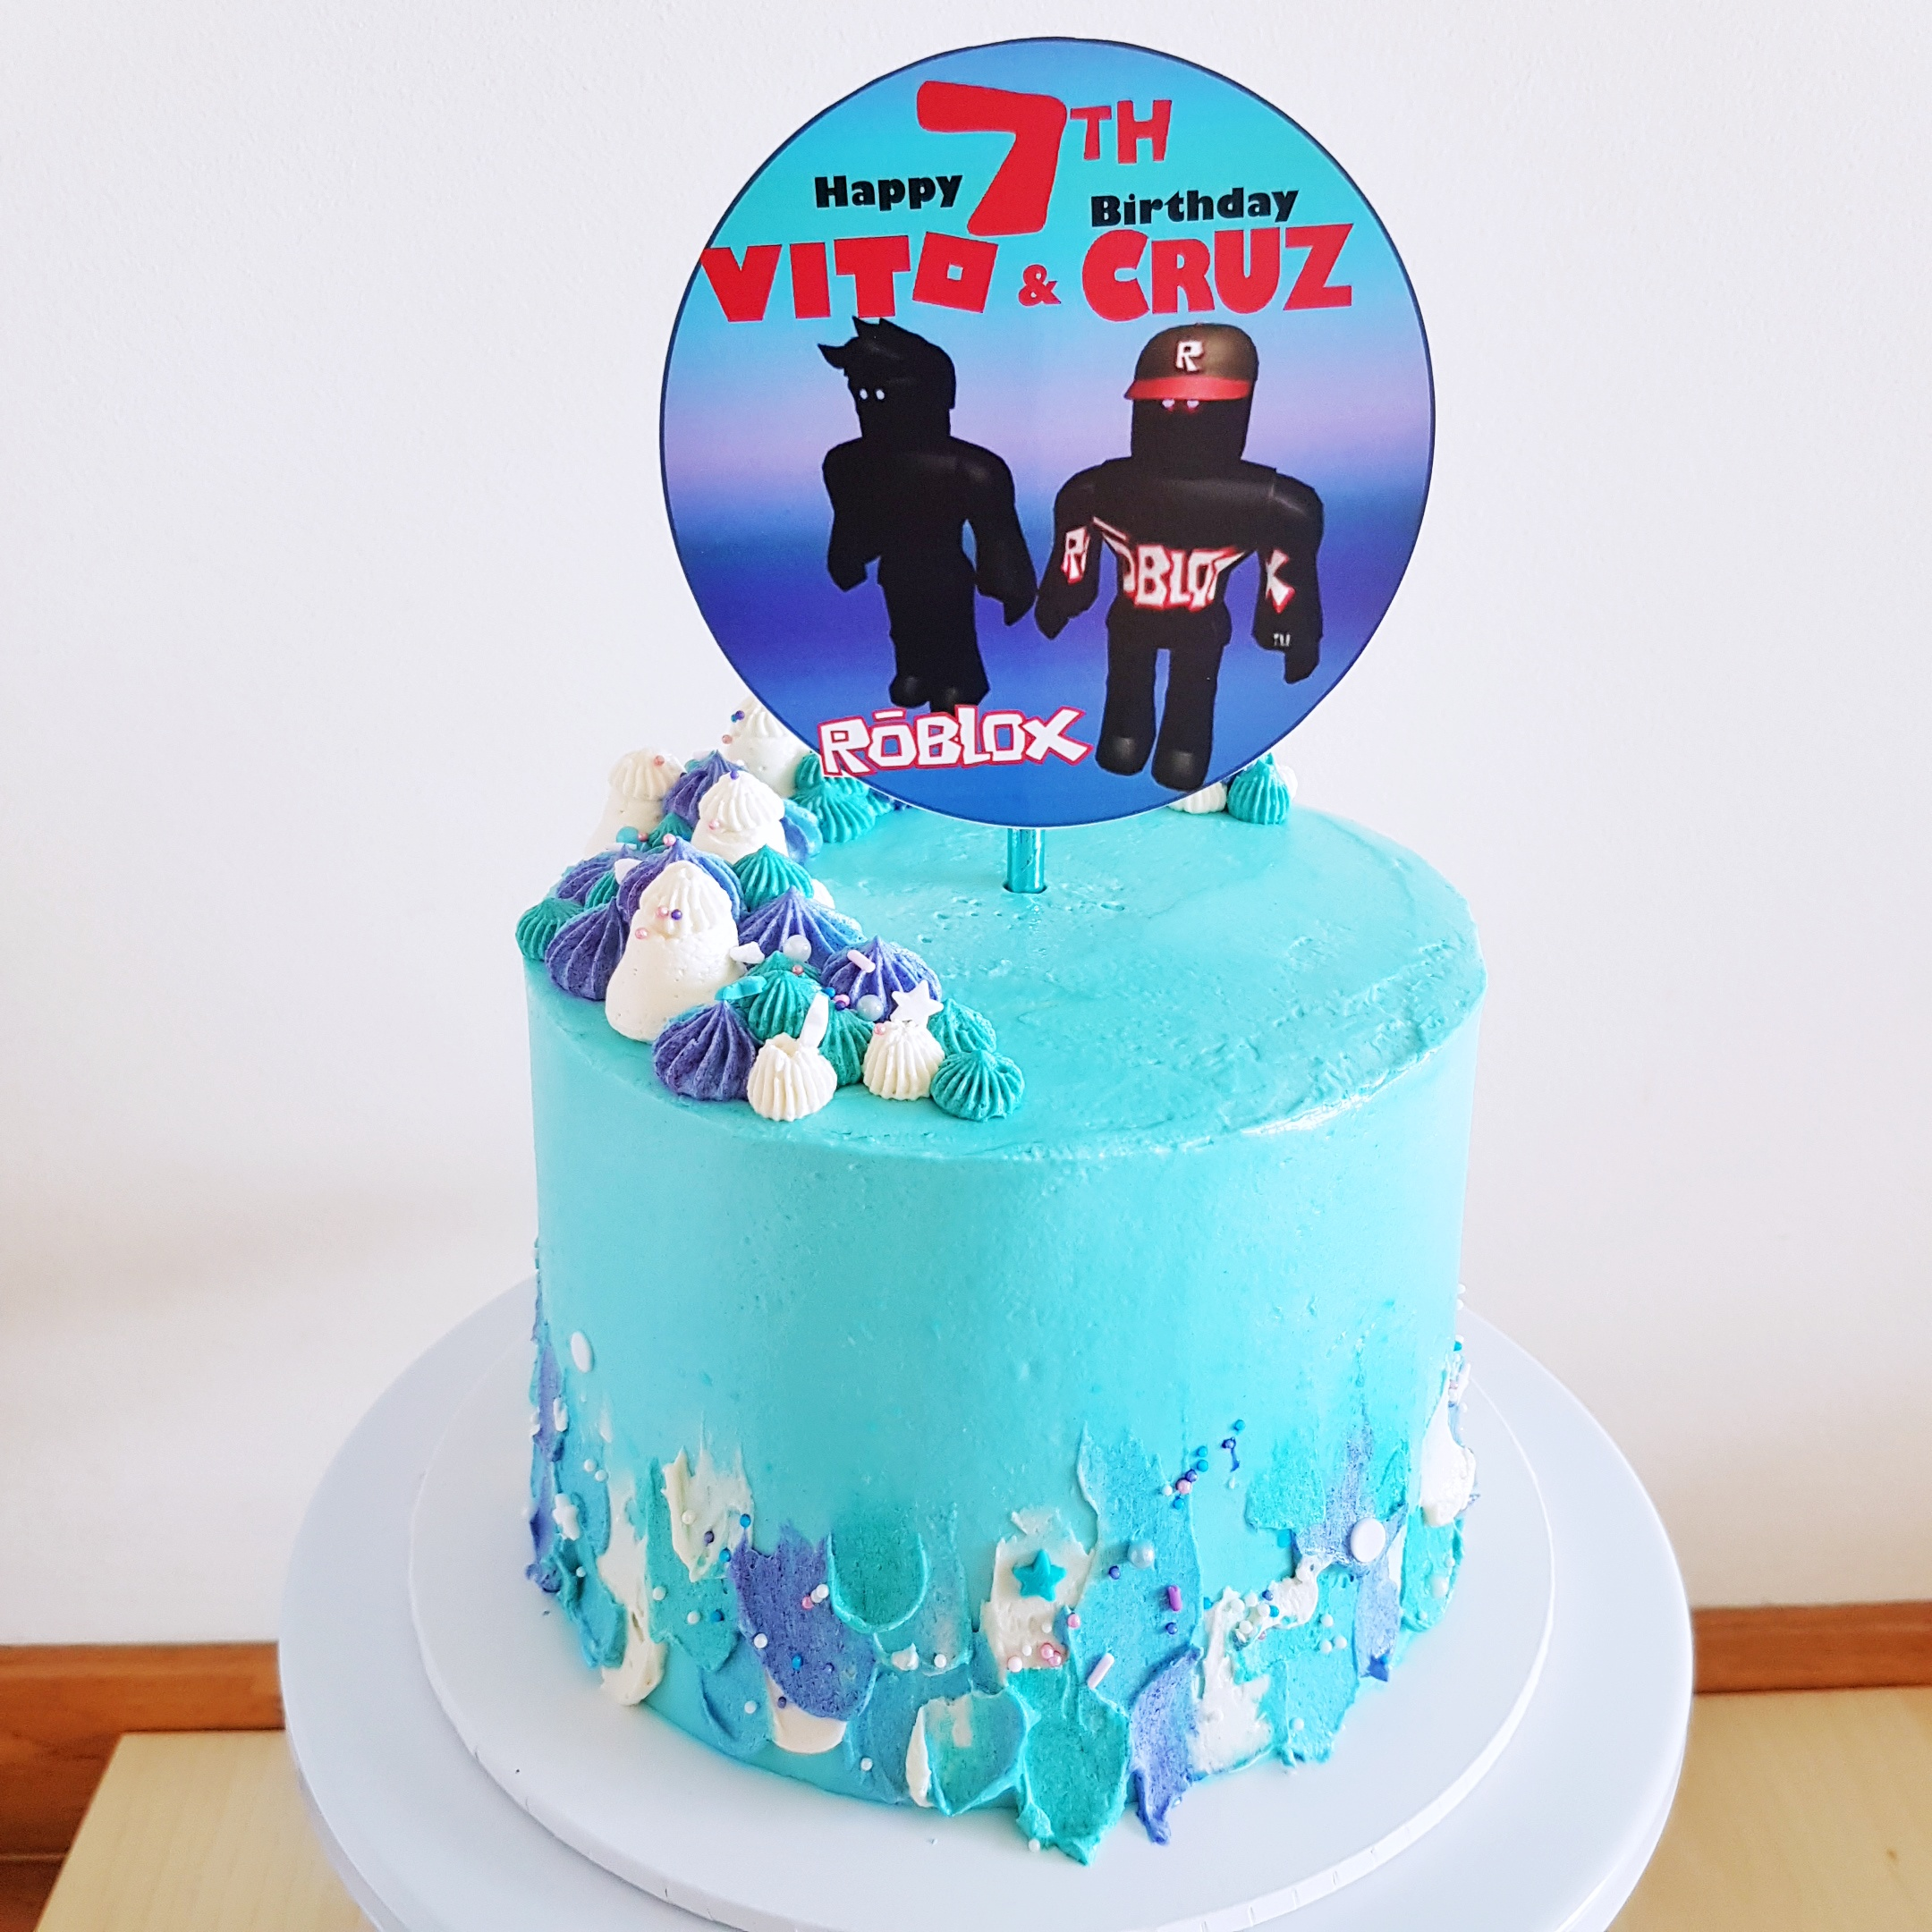 Roblox Cake by The Baking Experiment